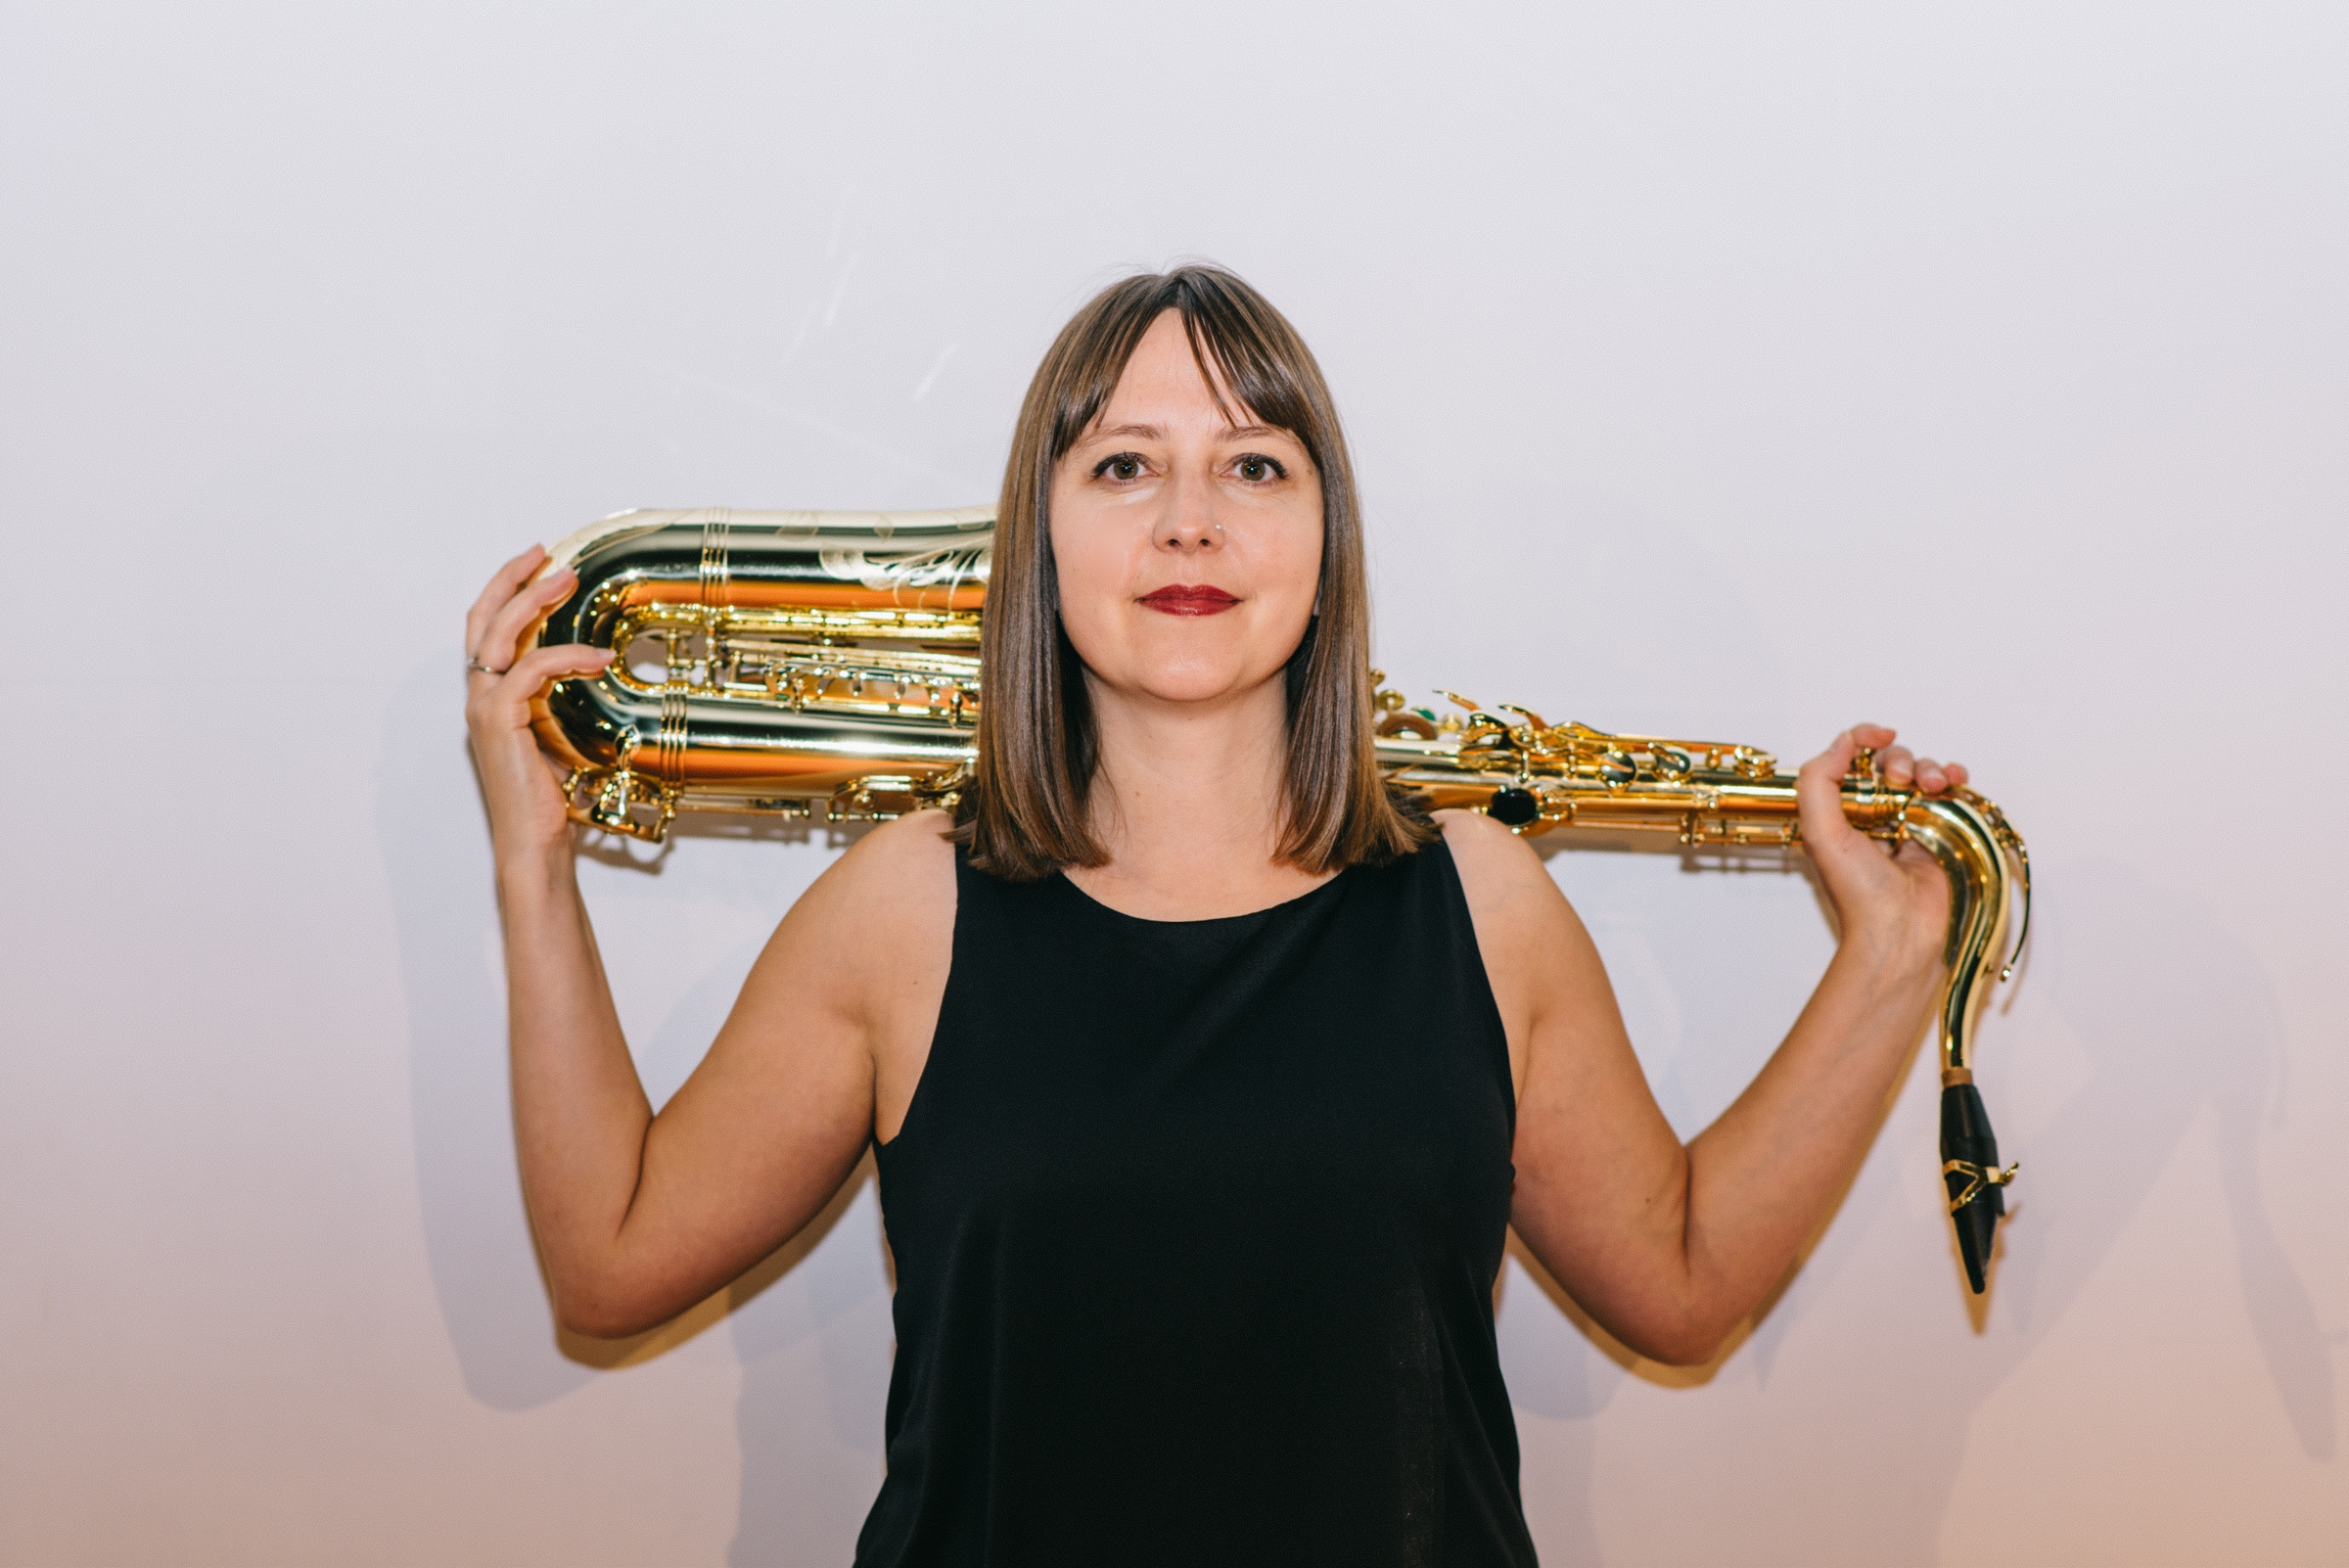 Allison Balcetis - Internationally recognized as an ambitious contemporary saxophonist, Allison Balcetis has studied and collaborated with artists from around the world. Her international performance career includes concerts throughout North America, Europe, Brazil, Thailand, and Taiwan. Recent projects include Curto-Circuito, a yearly workshop for young Brazilian composers, which has seen the creation of over 30 new pieces for saxophone and piano since 2014. Her work as a soloist and chamber musician has produced over 70 world premieres.As a faculty member of the University of Alberta since 2009, Allison trains the next generation of thoughtful, artistic musicians. Outside of the university, Allison helps develop the contemporary arts community as co-curator of SubArctic Improv and Experimental Arts, a monthly interdisciplinary concert series in a totally improvised context. In 2017 she was awarded the Qualico Artistic Leadership Award from the City of Edmonton.Allison's recent chamber activities include performing with the Edmonton Saxophone Quartet, improvisation ensemble Damn Magpies, and work with Edmontonian musicians and dance companies.While earning her Doctorate of Musical Arts from the University of Alberta, Allison produced her first solo recording, Zeniths and Nadirs. She also holds degrees from Bowling Green State University, and is the first – and only – saxophonist to earn a joint degree from the Université de Bordeaux and the Conservatoire National de Région de Bordeaux.